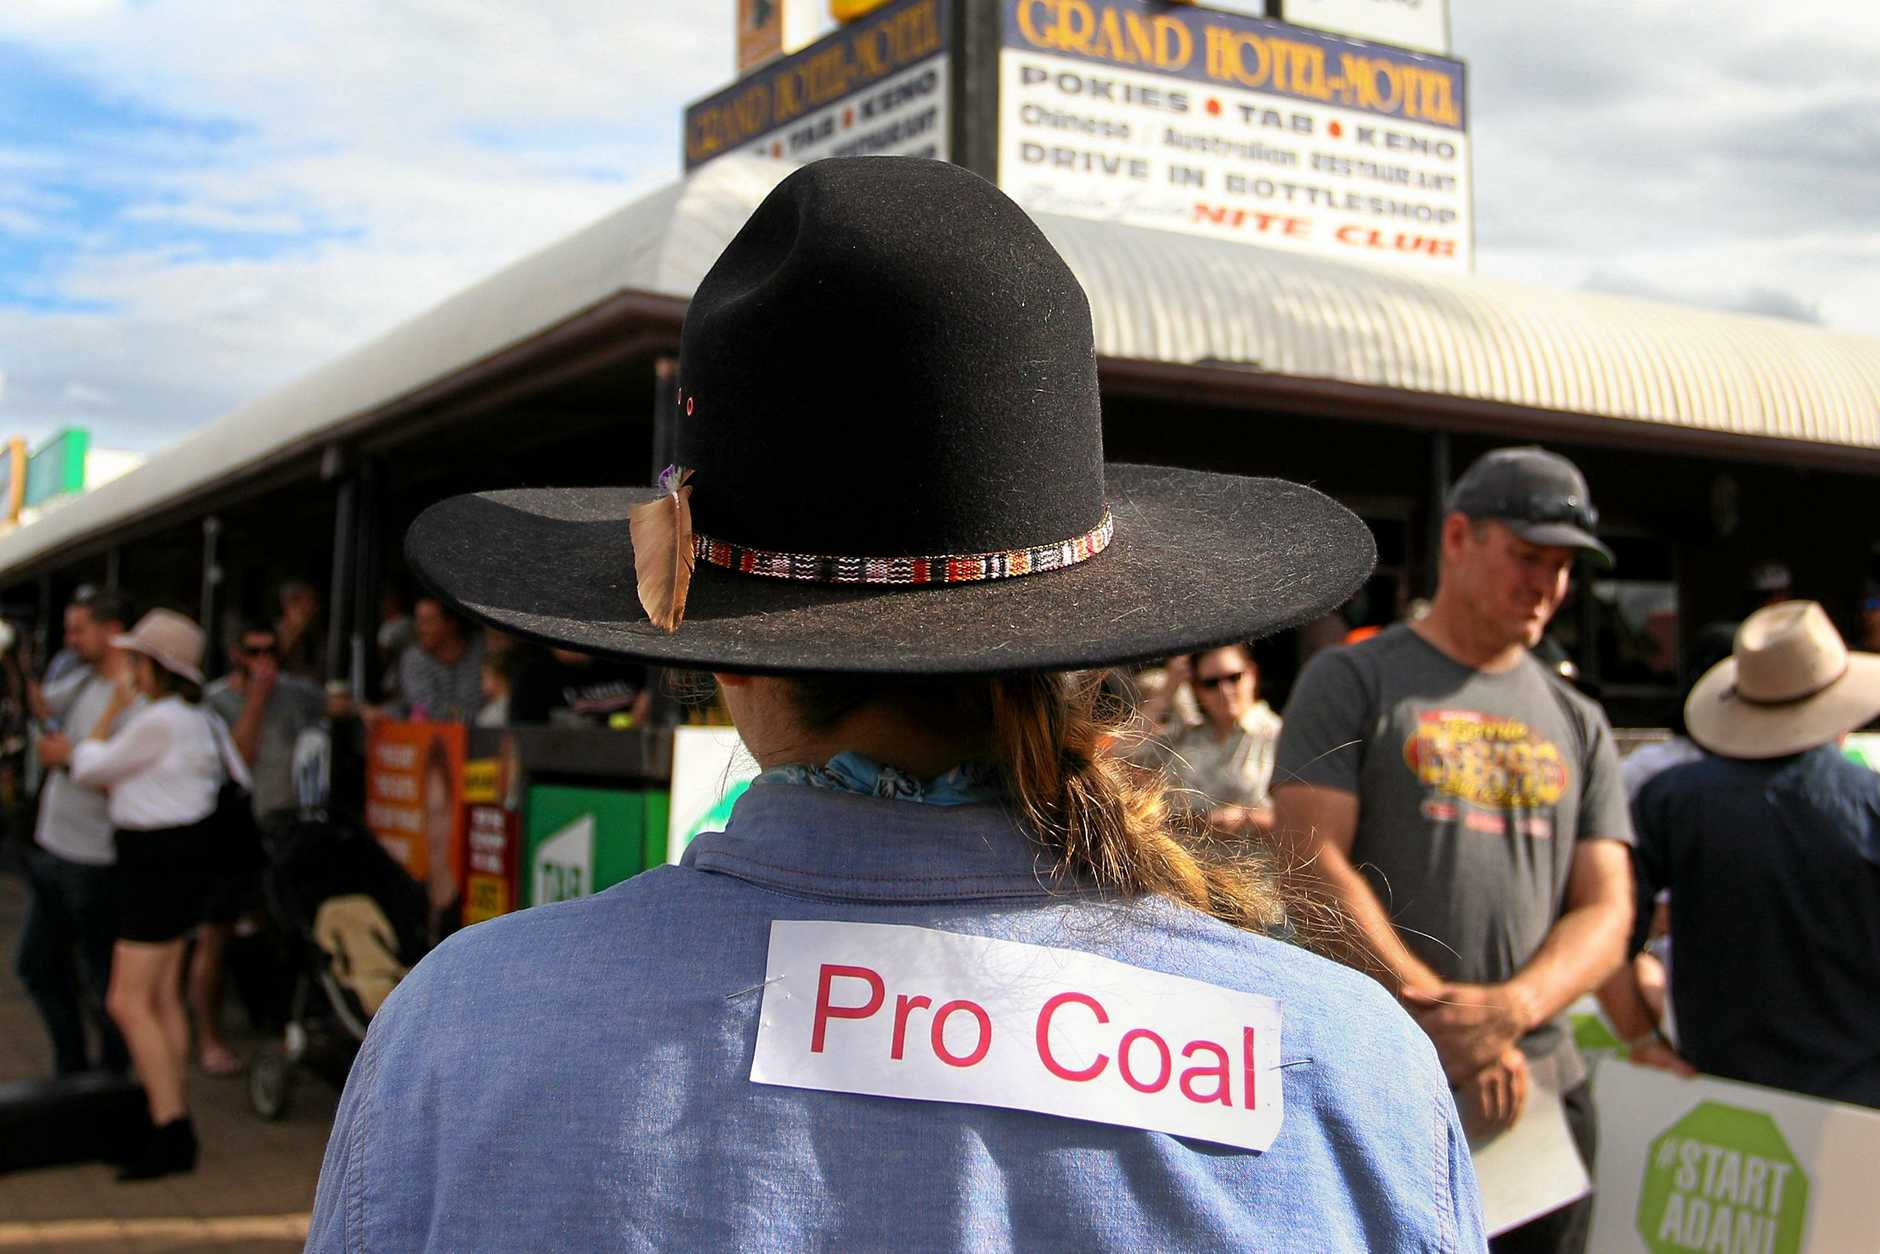 CLERMONT, AUSTRALIA - APRIL 27: A young pro-Adani supporter wears a 'Pro Coal' sign on her shirt on April 27, 2019 in Clermont, Australia. Former Greens leader and conservationist, Bob Brown, has been leading a convoy of environmental activists through the Southern States towards Central Queensland as part of the #StopAdani movement. With primary concerns for increased coal ship travel through the Great Barrier Reef World Heritage Area, unlocking of the Galilee Basin and increase in carbon pollution. The proposed Adani Carmichael Mine, if approved will be constructed in the North Galilee Basin, 160kms north-west of regional town Clermont, its first stage is estimated to produce 27.5 million tonnes of coal per annum and will be transported via rail to Abbot Point which is situated 25km north of Bowen.